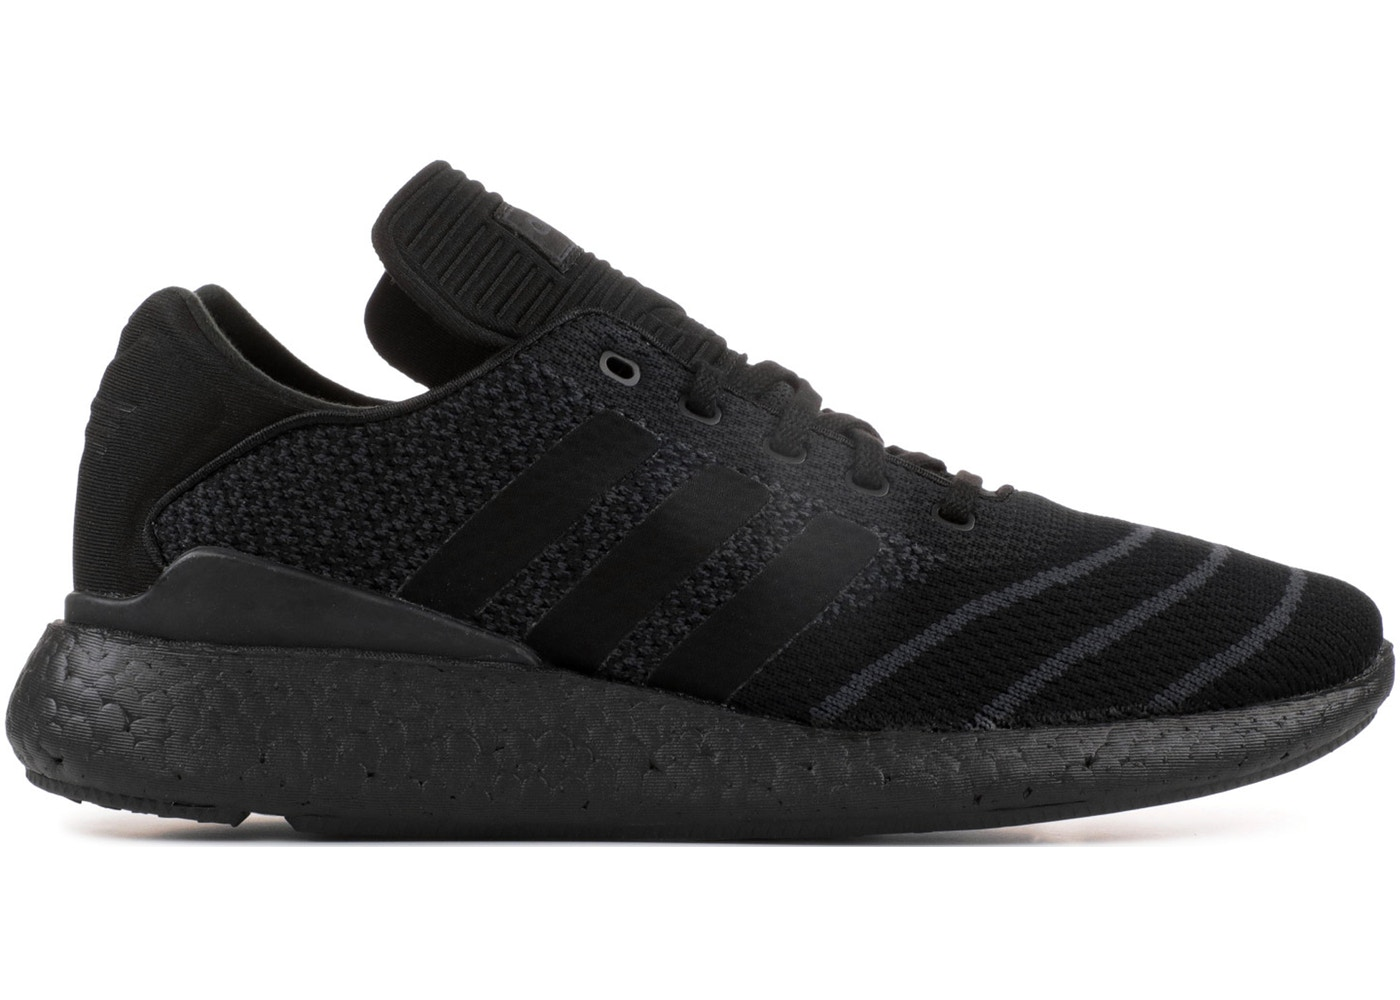 ccfa312e0b1ae Sell. or Ask. Size  11. View All Bids. adidas Busenitz Pure Boost Triple  Black